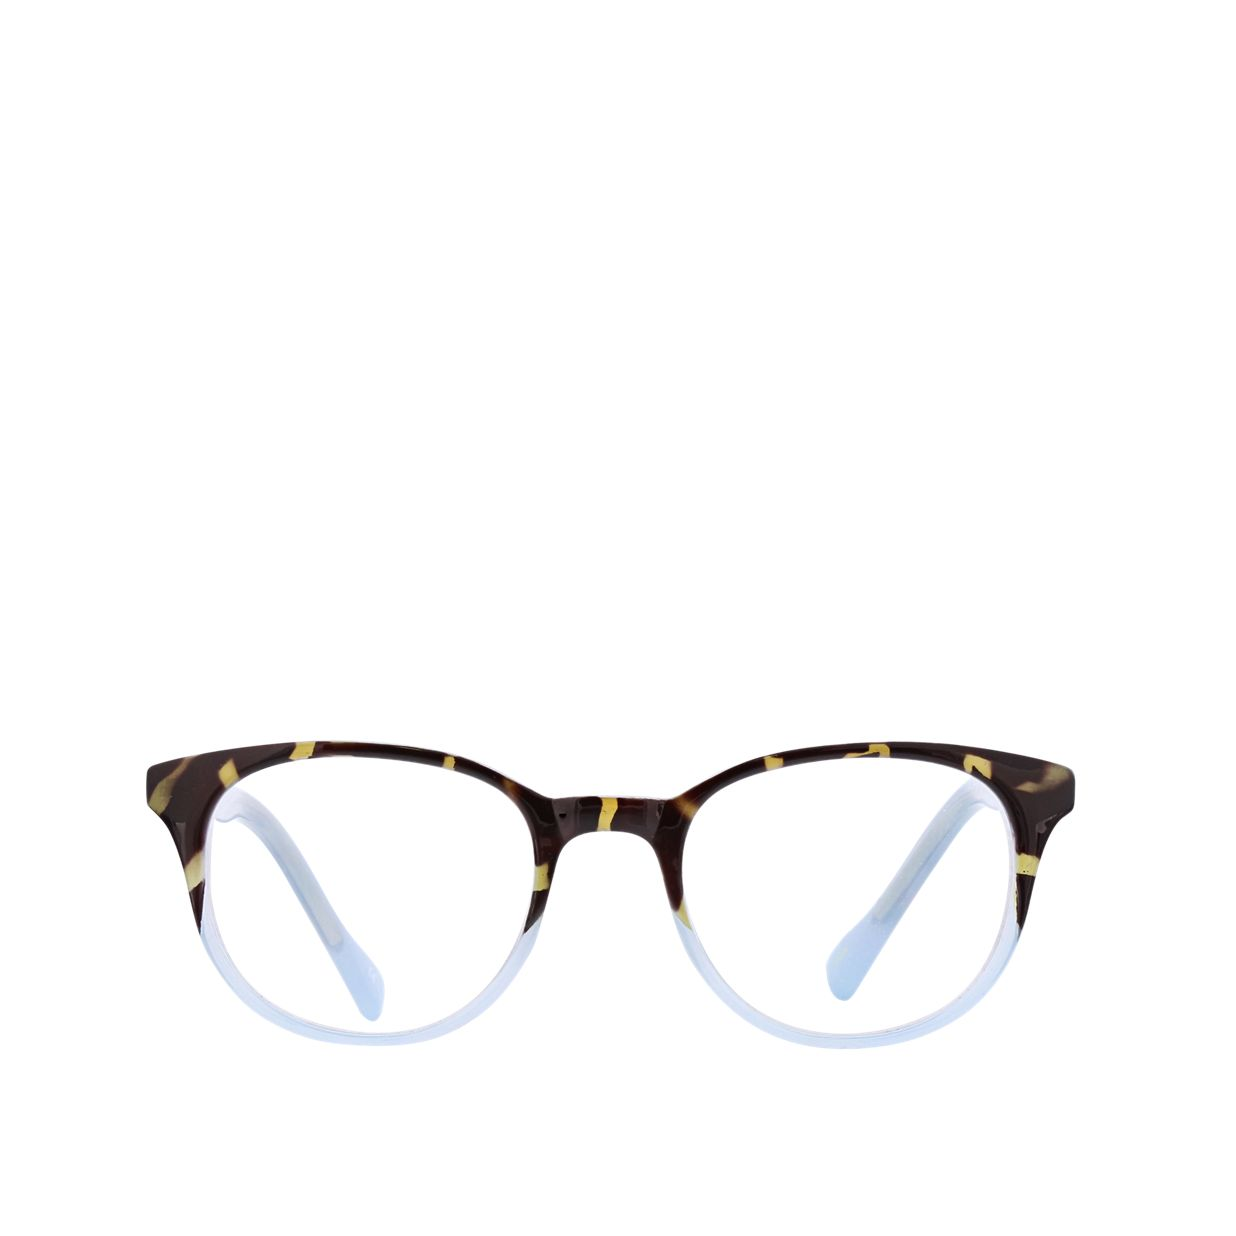 48e0450426 Image of Tamara Patterned Frame Reading Glasses in Shore Thing ...